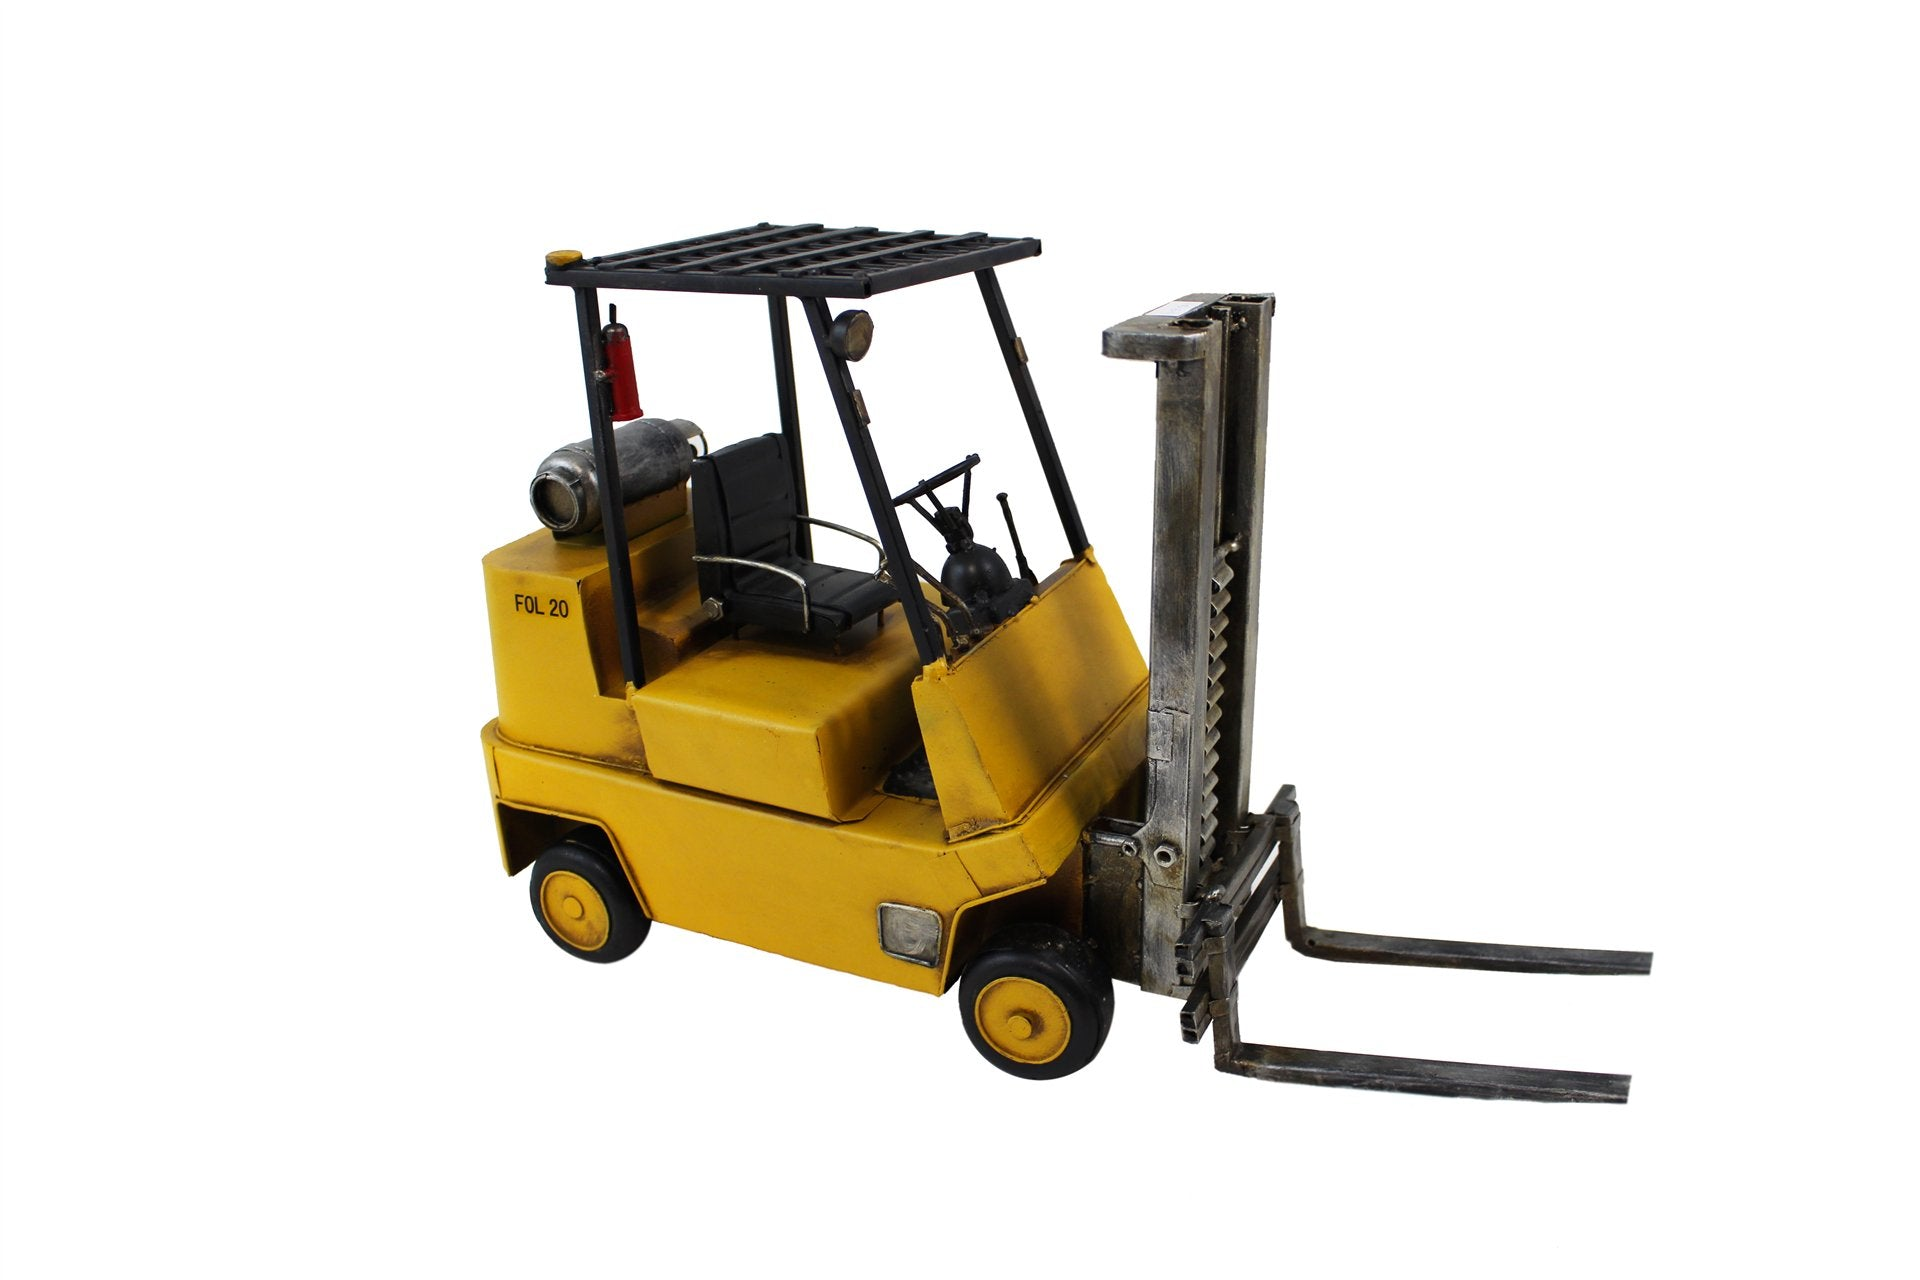 MINIATURE YELLOW FORKLIFT